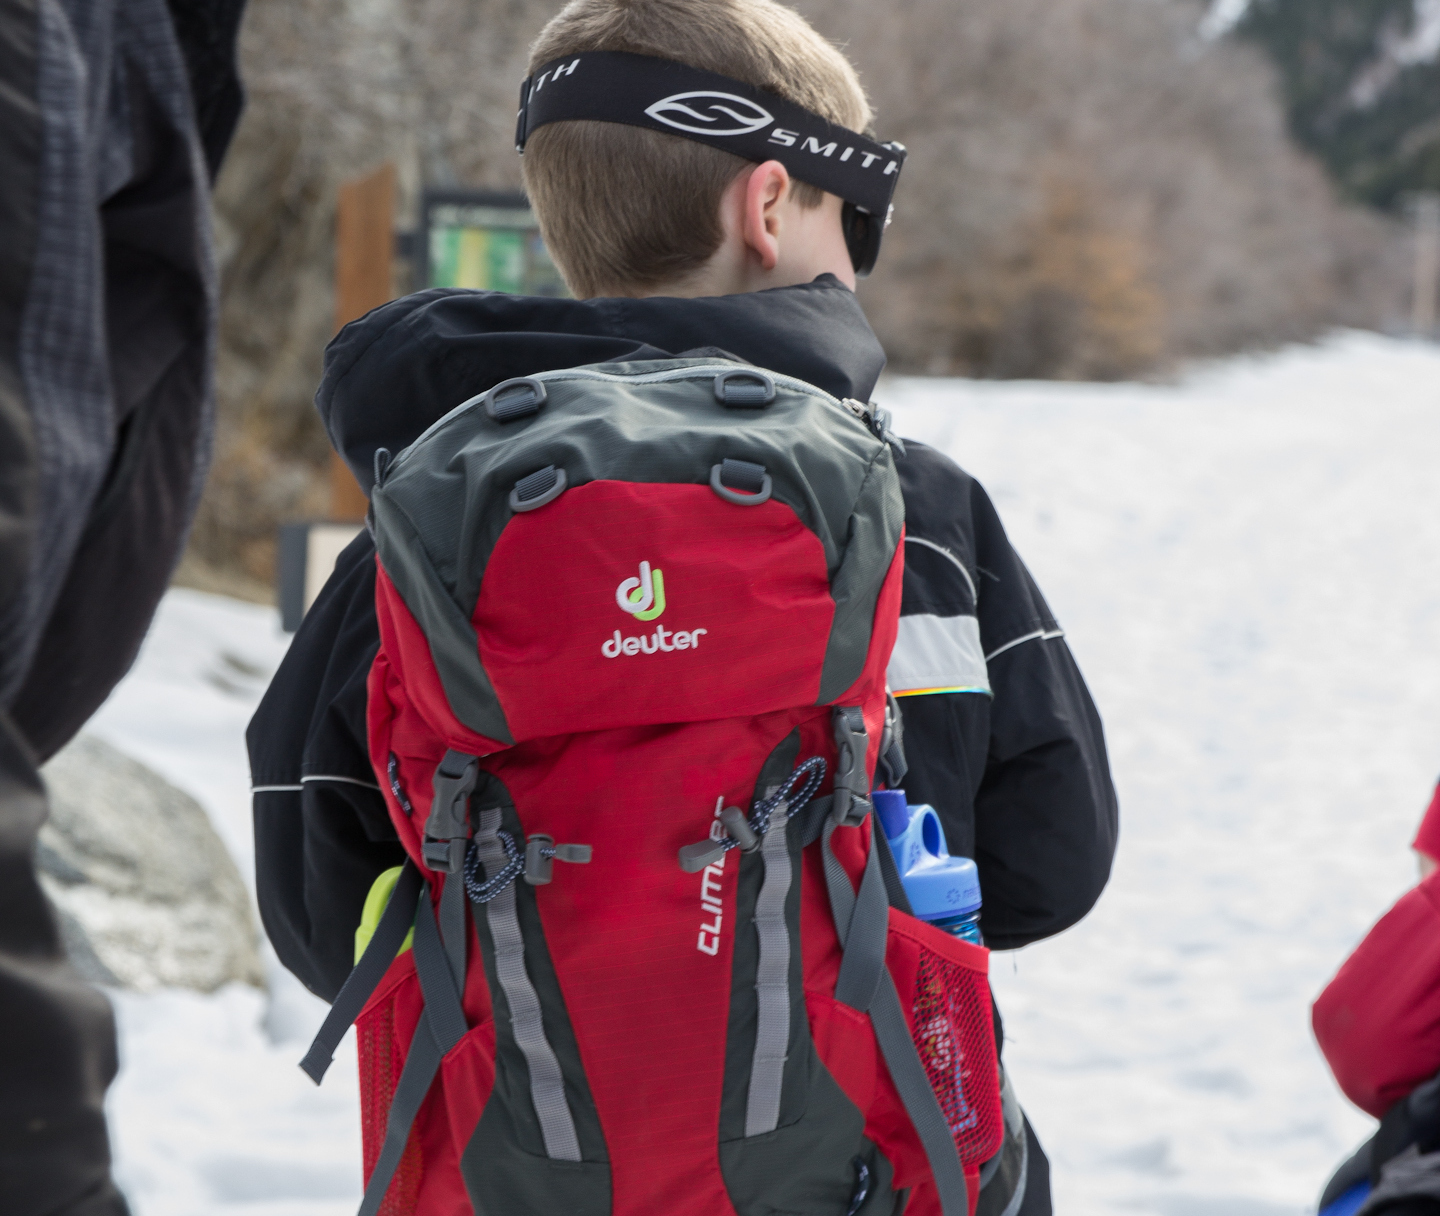 Deuter Youth Climber Backpack - the kid project